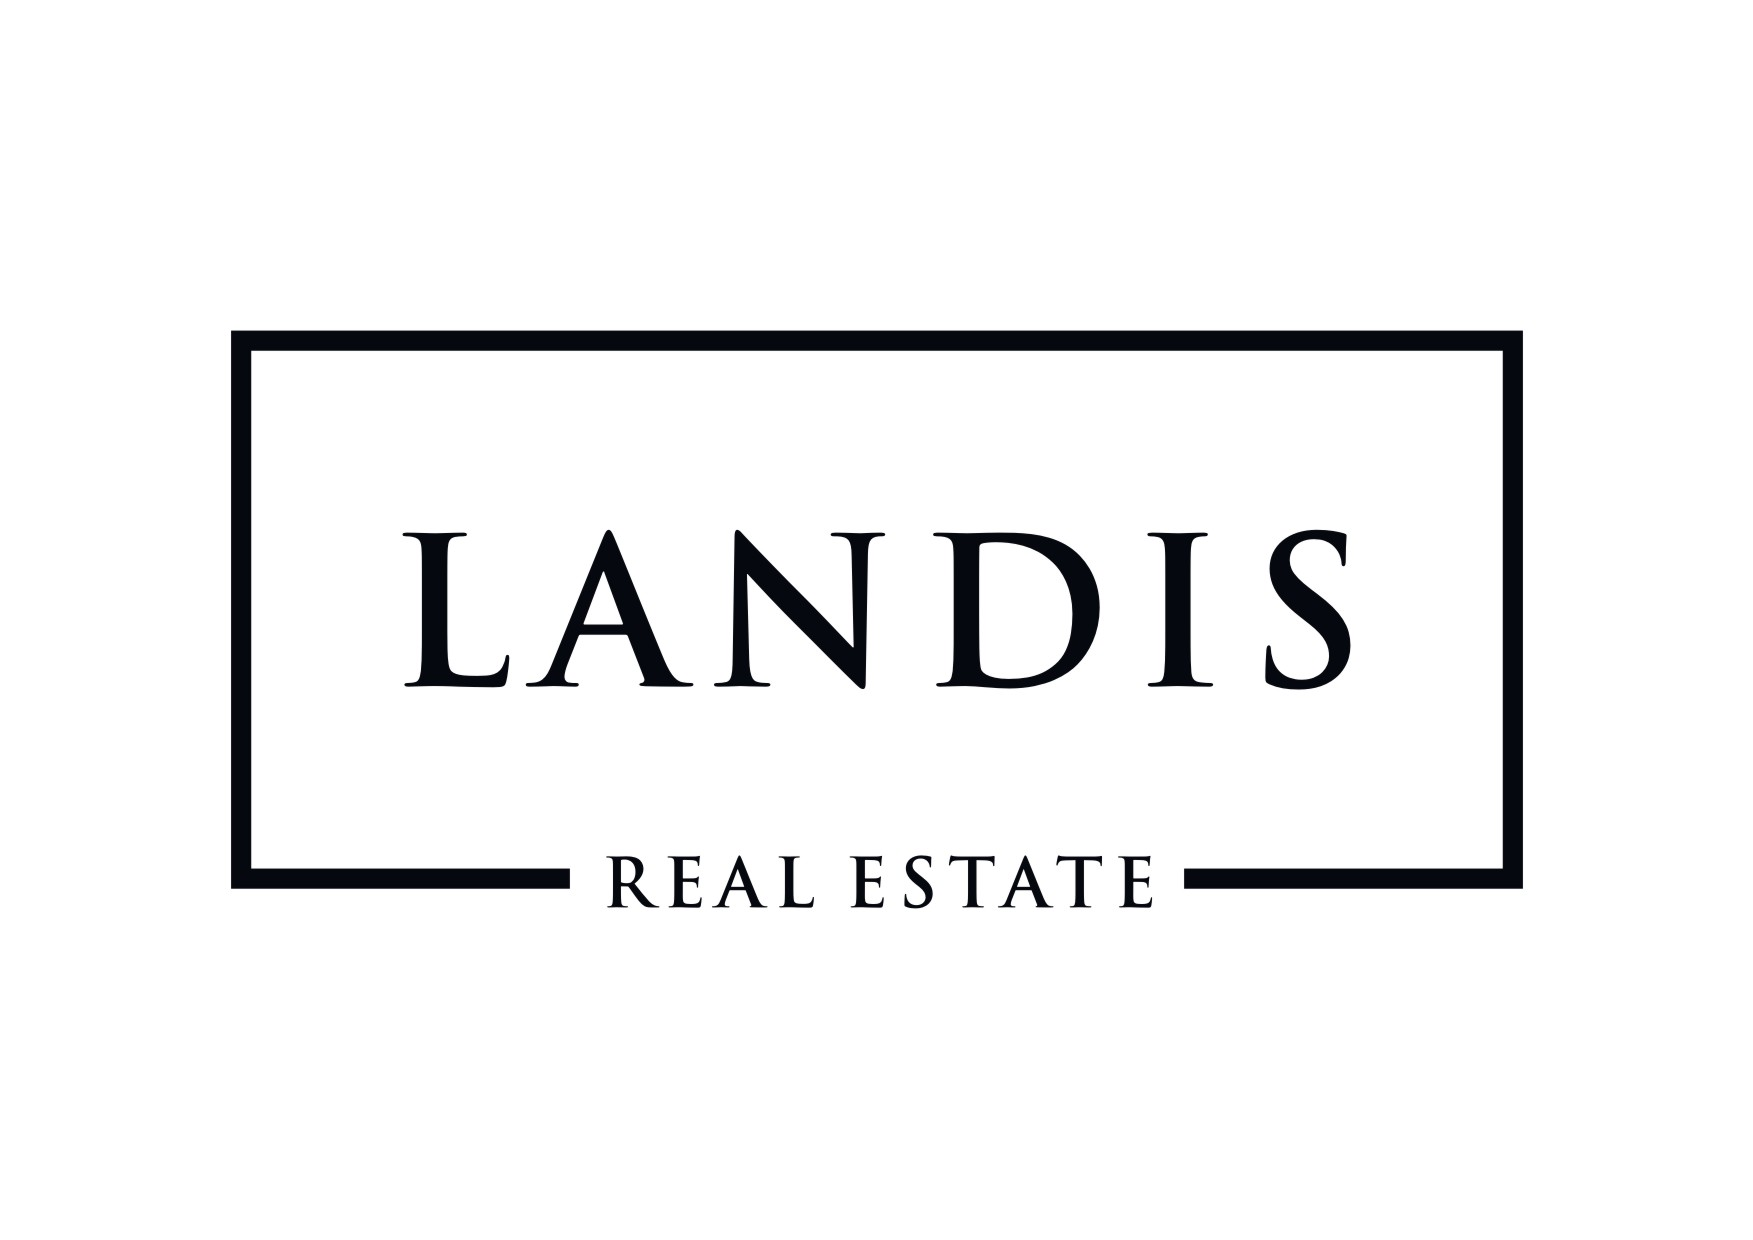 LANDIS  REAL ESTATE